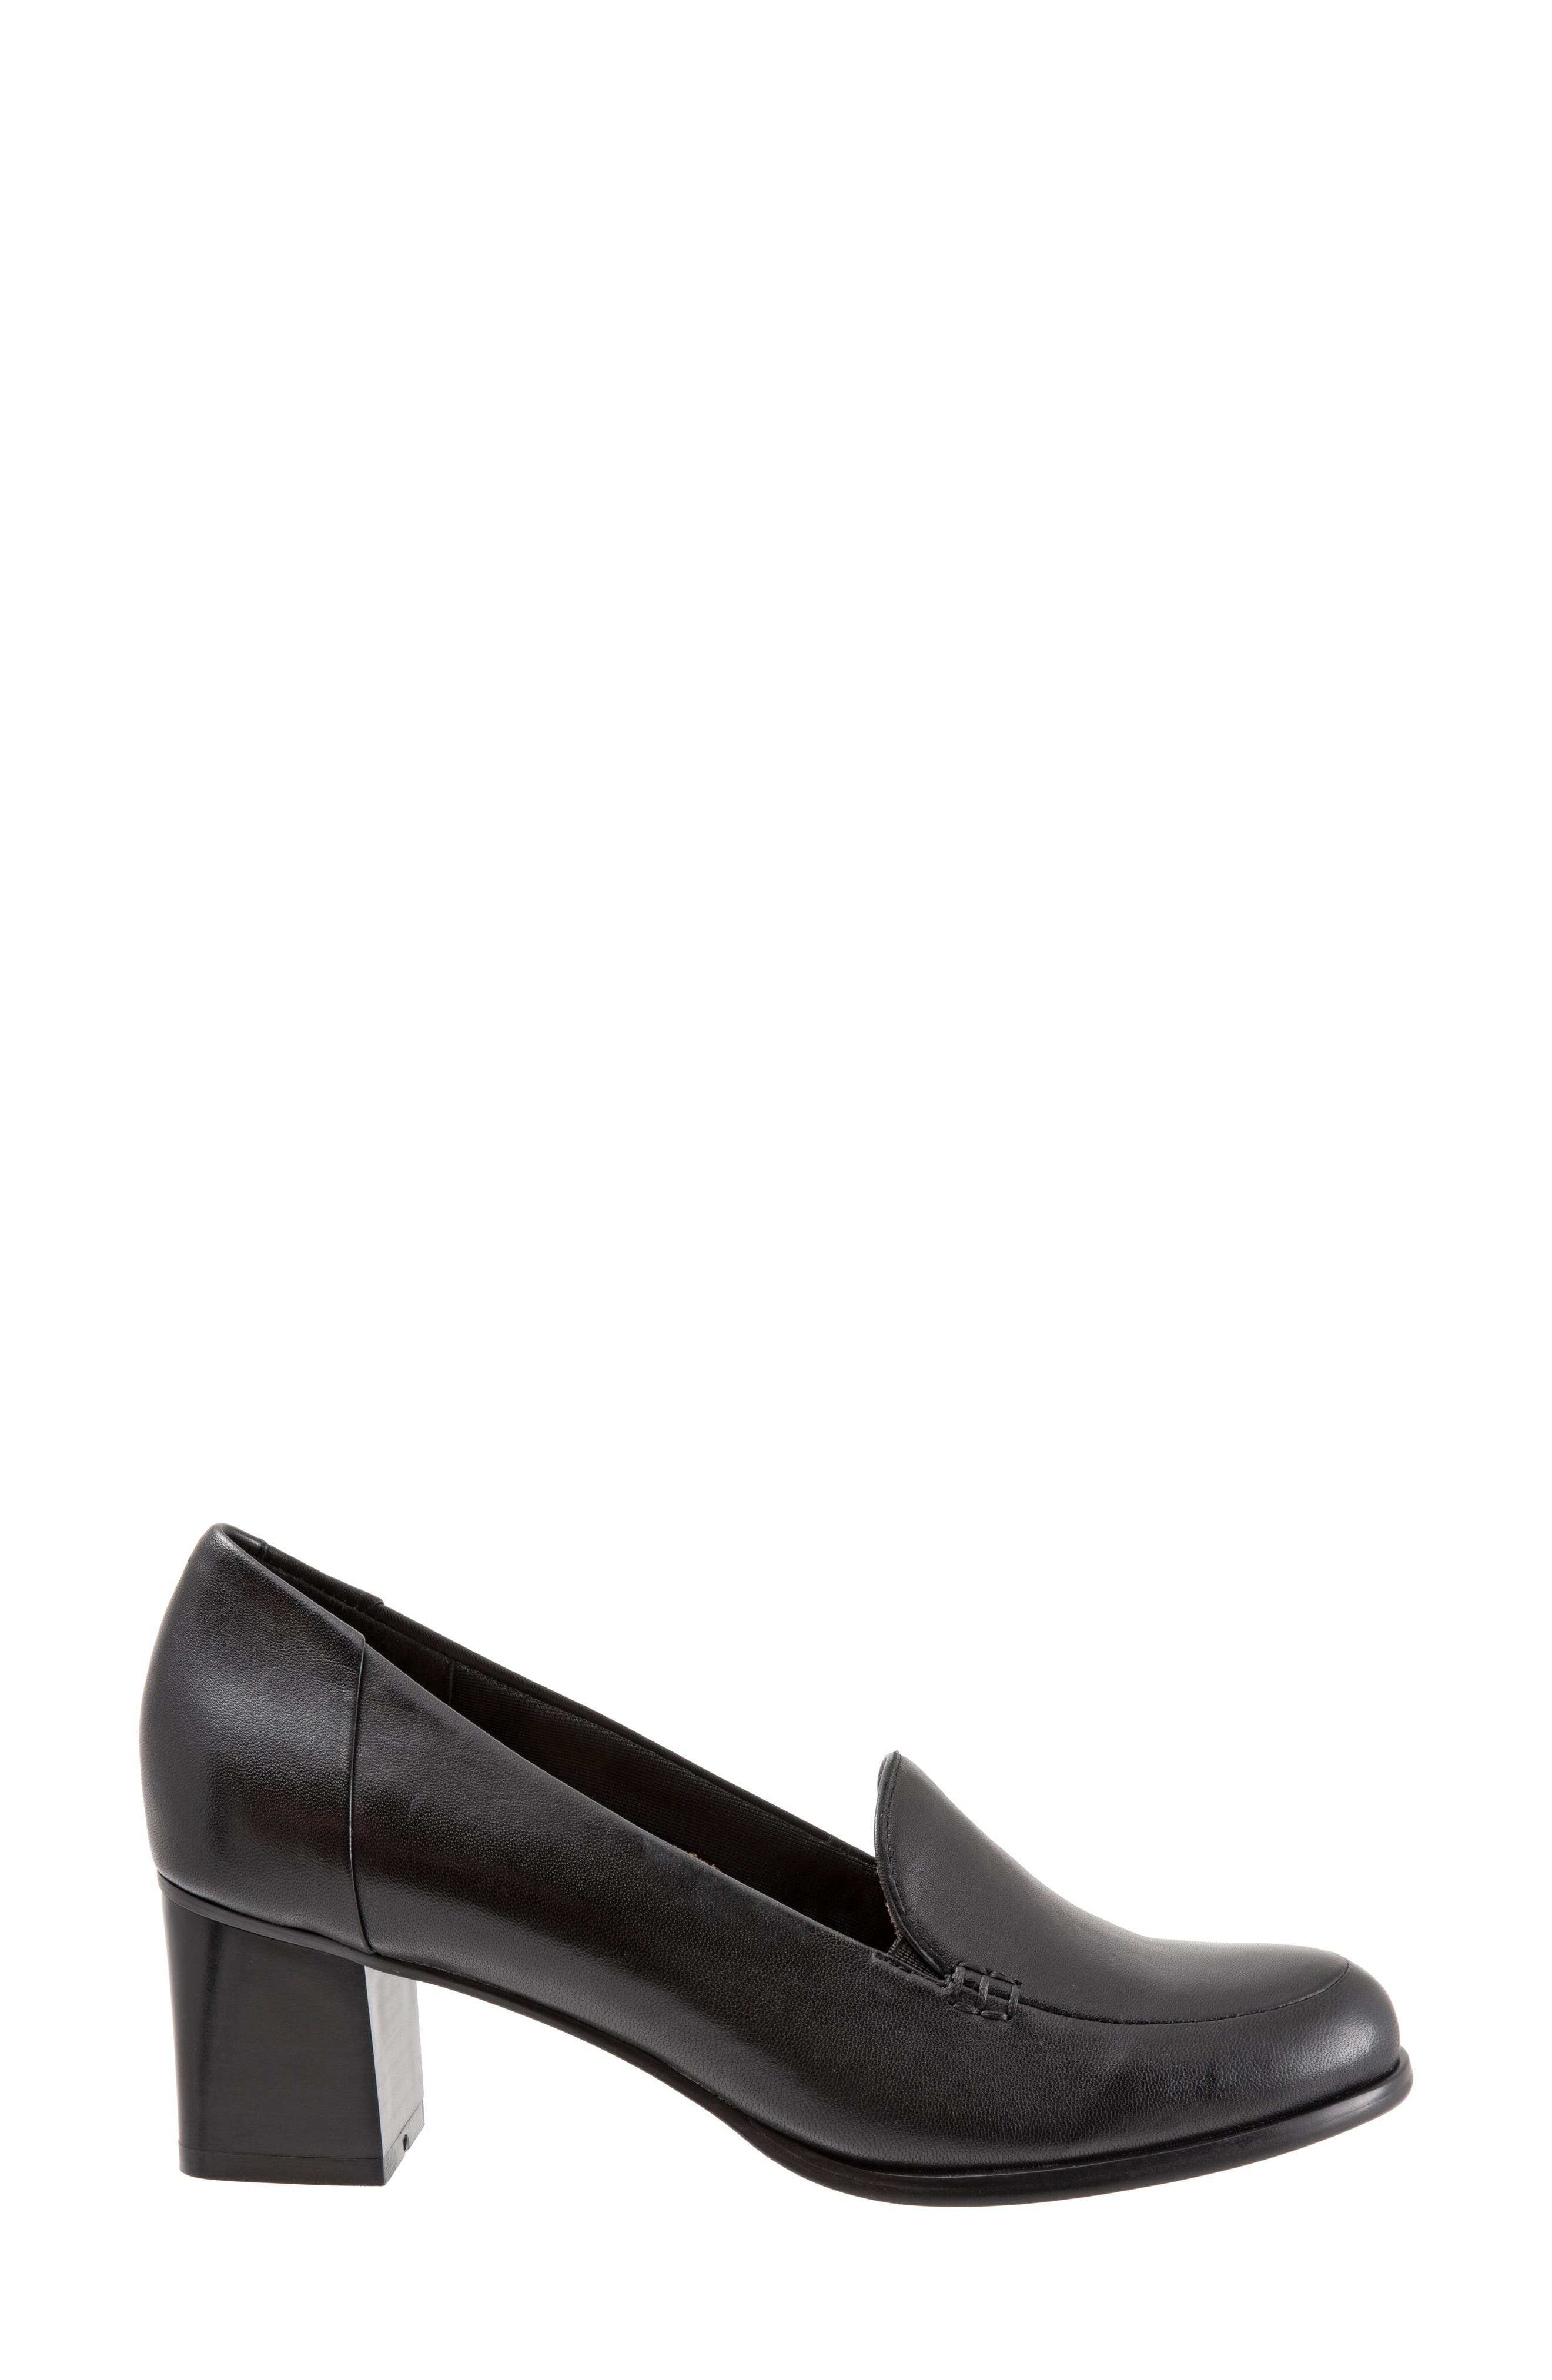 TROTTERS, Quincy Loafer Pump, Alternate thumbnail 3, color, BLACK LEATHER